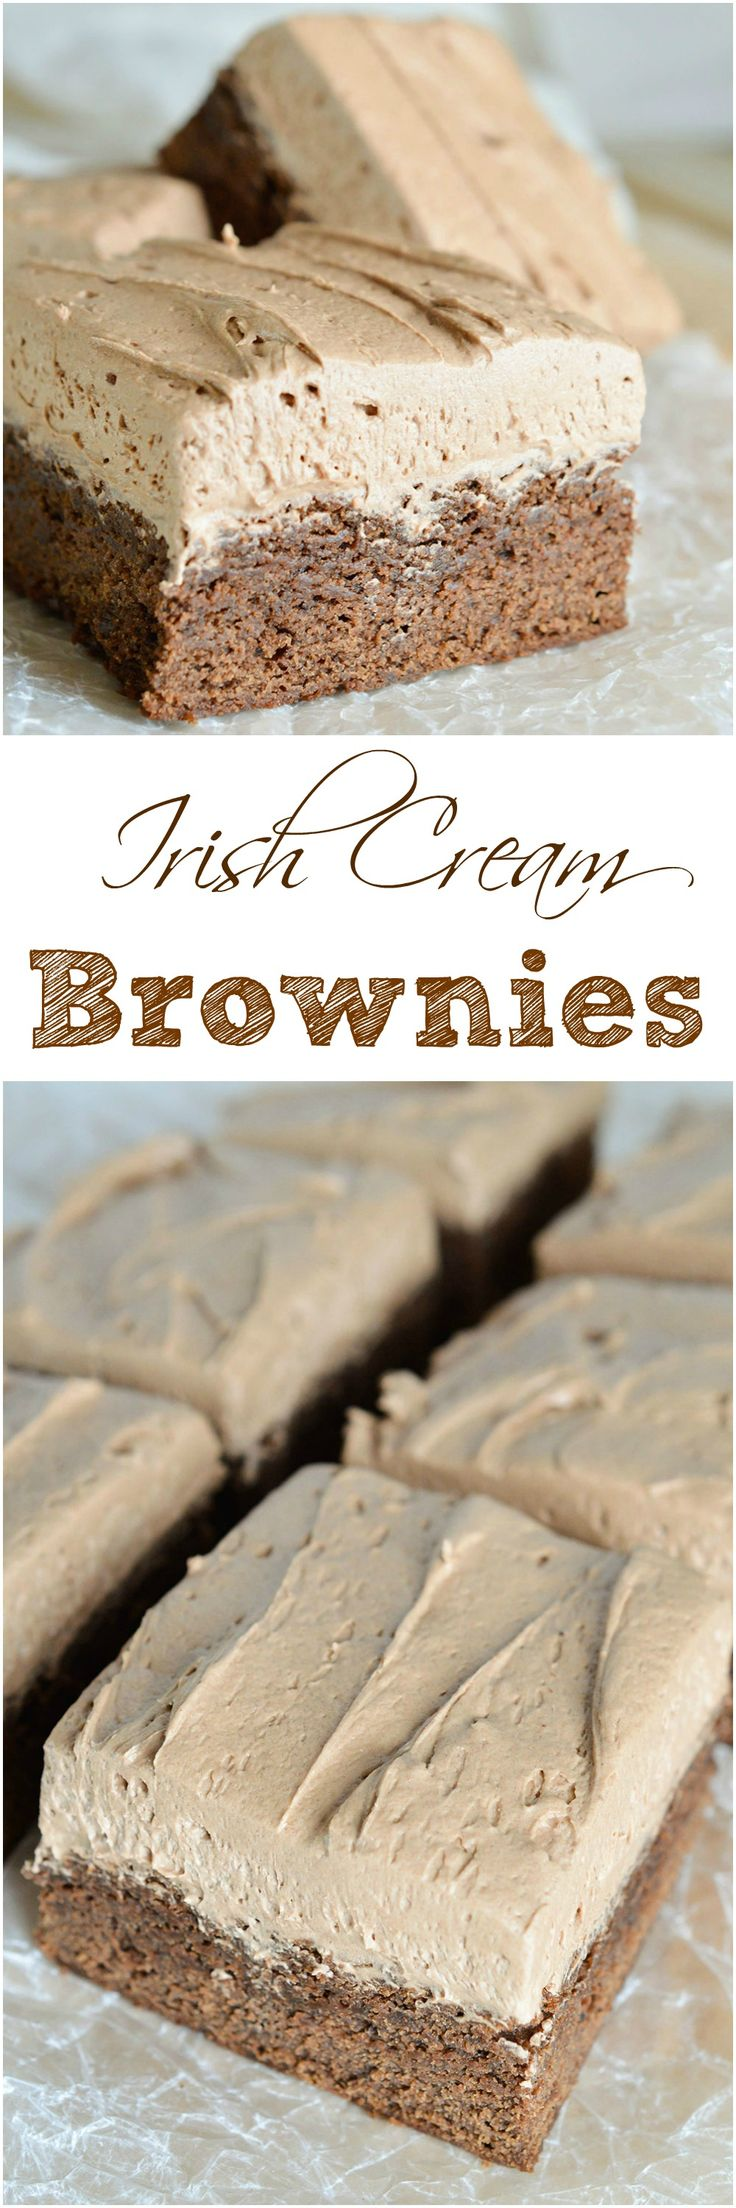 Irish Cream Chocolate Brownie Recipe - This easy brownie recipe is full of Irish Cream and Chocolate flavor! Makes a cake like brownie that is perfect for dessert! #brownies wonkywonderful.com